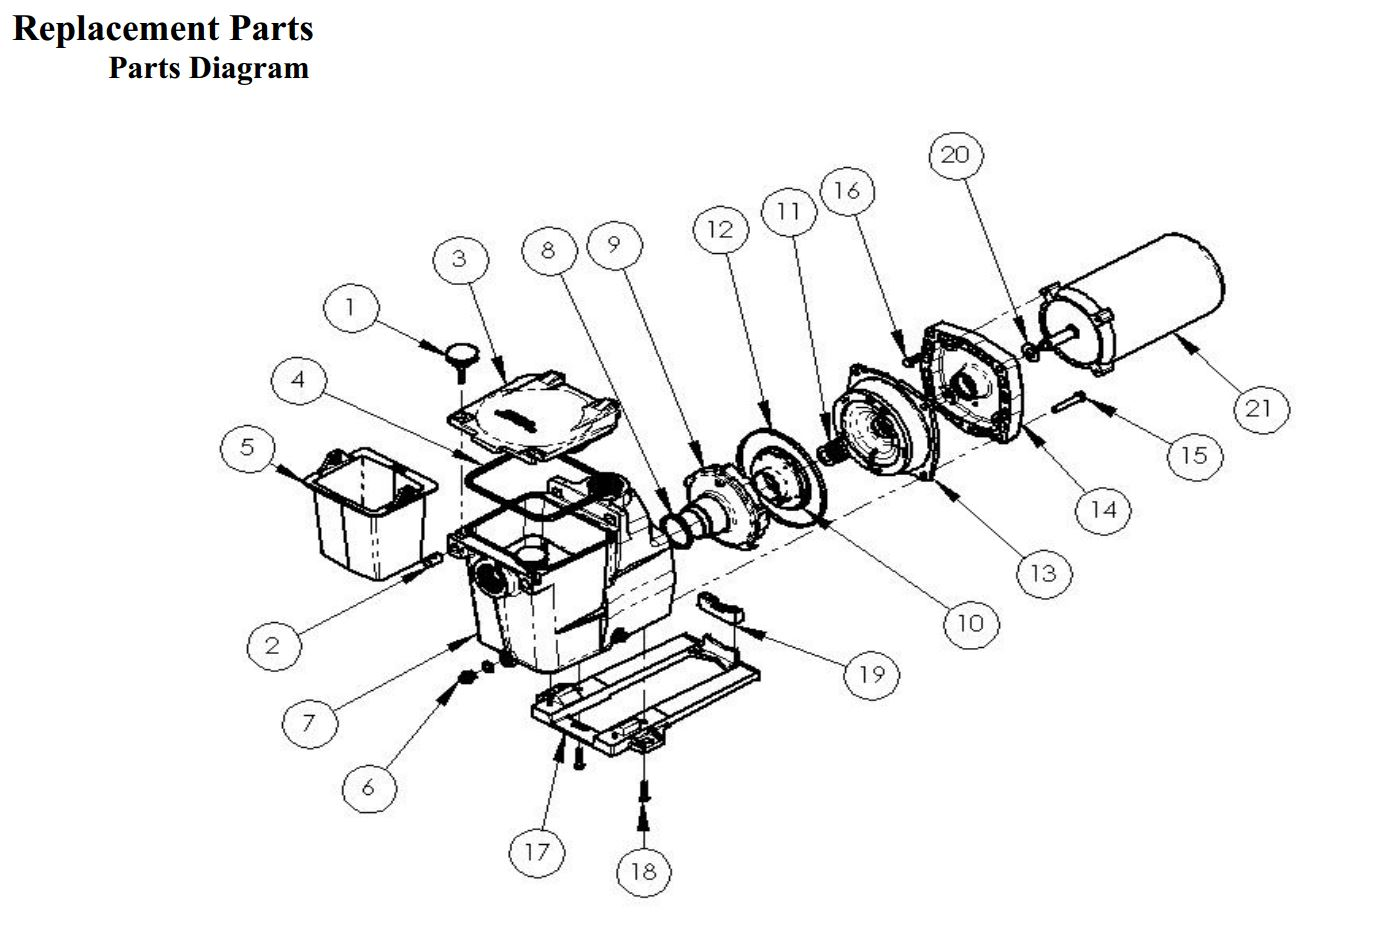 Hayward_Pump_ReplacementParts_WireDiagram._V359521762_ amazon com hayward sp2605x7 super pump 75 hp max rated single hayward super pump wiring diagram 230v at mifinder.co